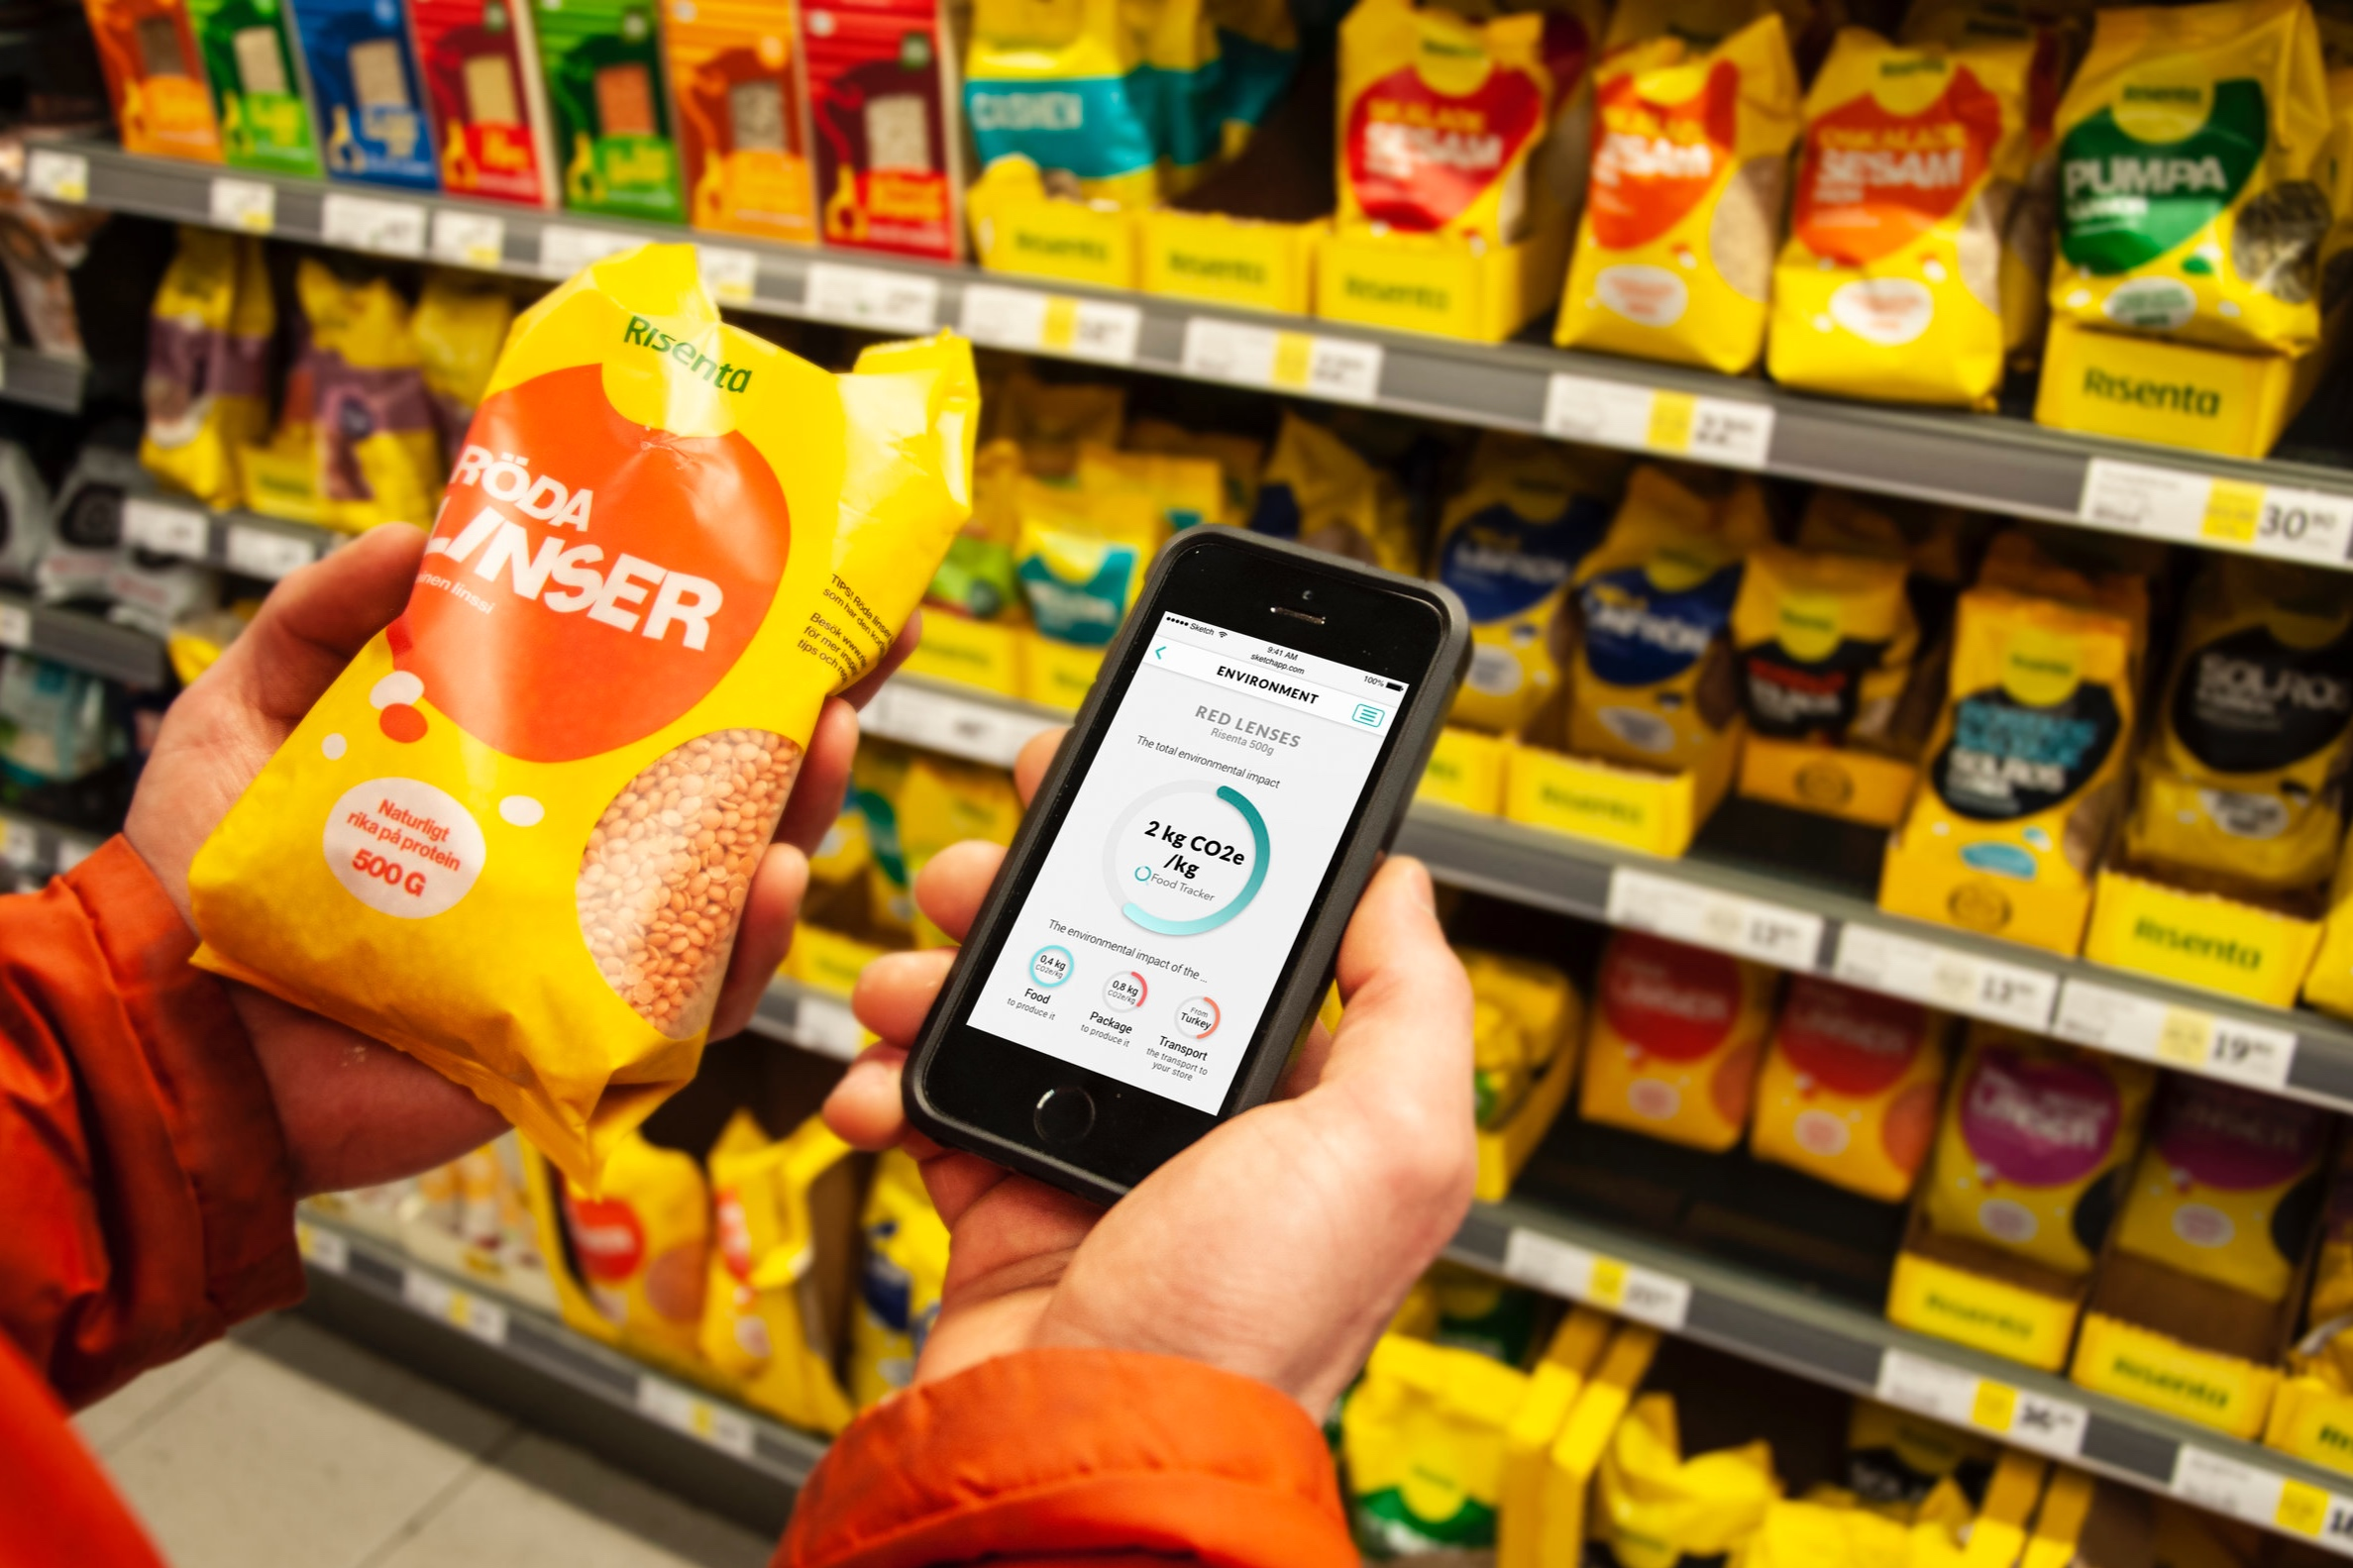 Food Tracker shares information about the product to the user, for example information about the products affect on the climate